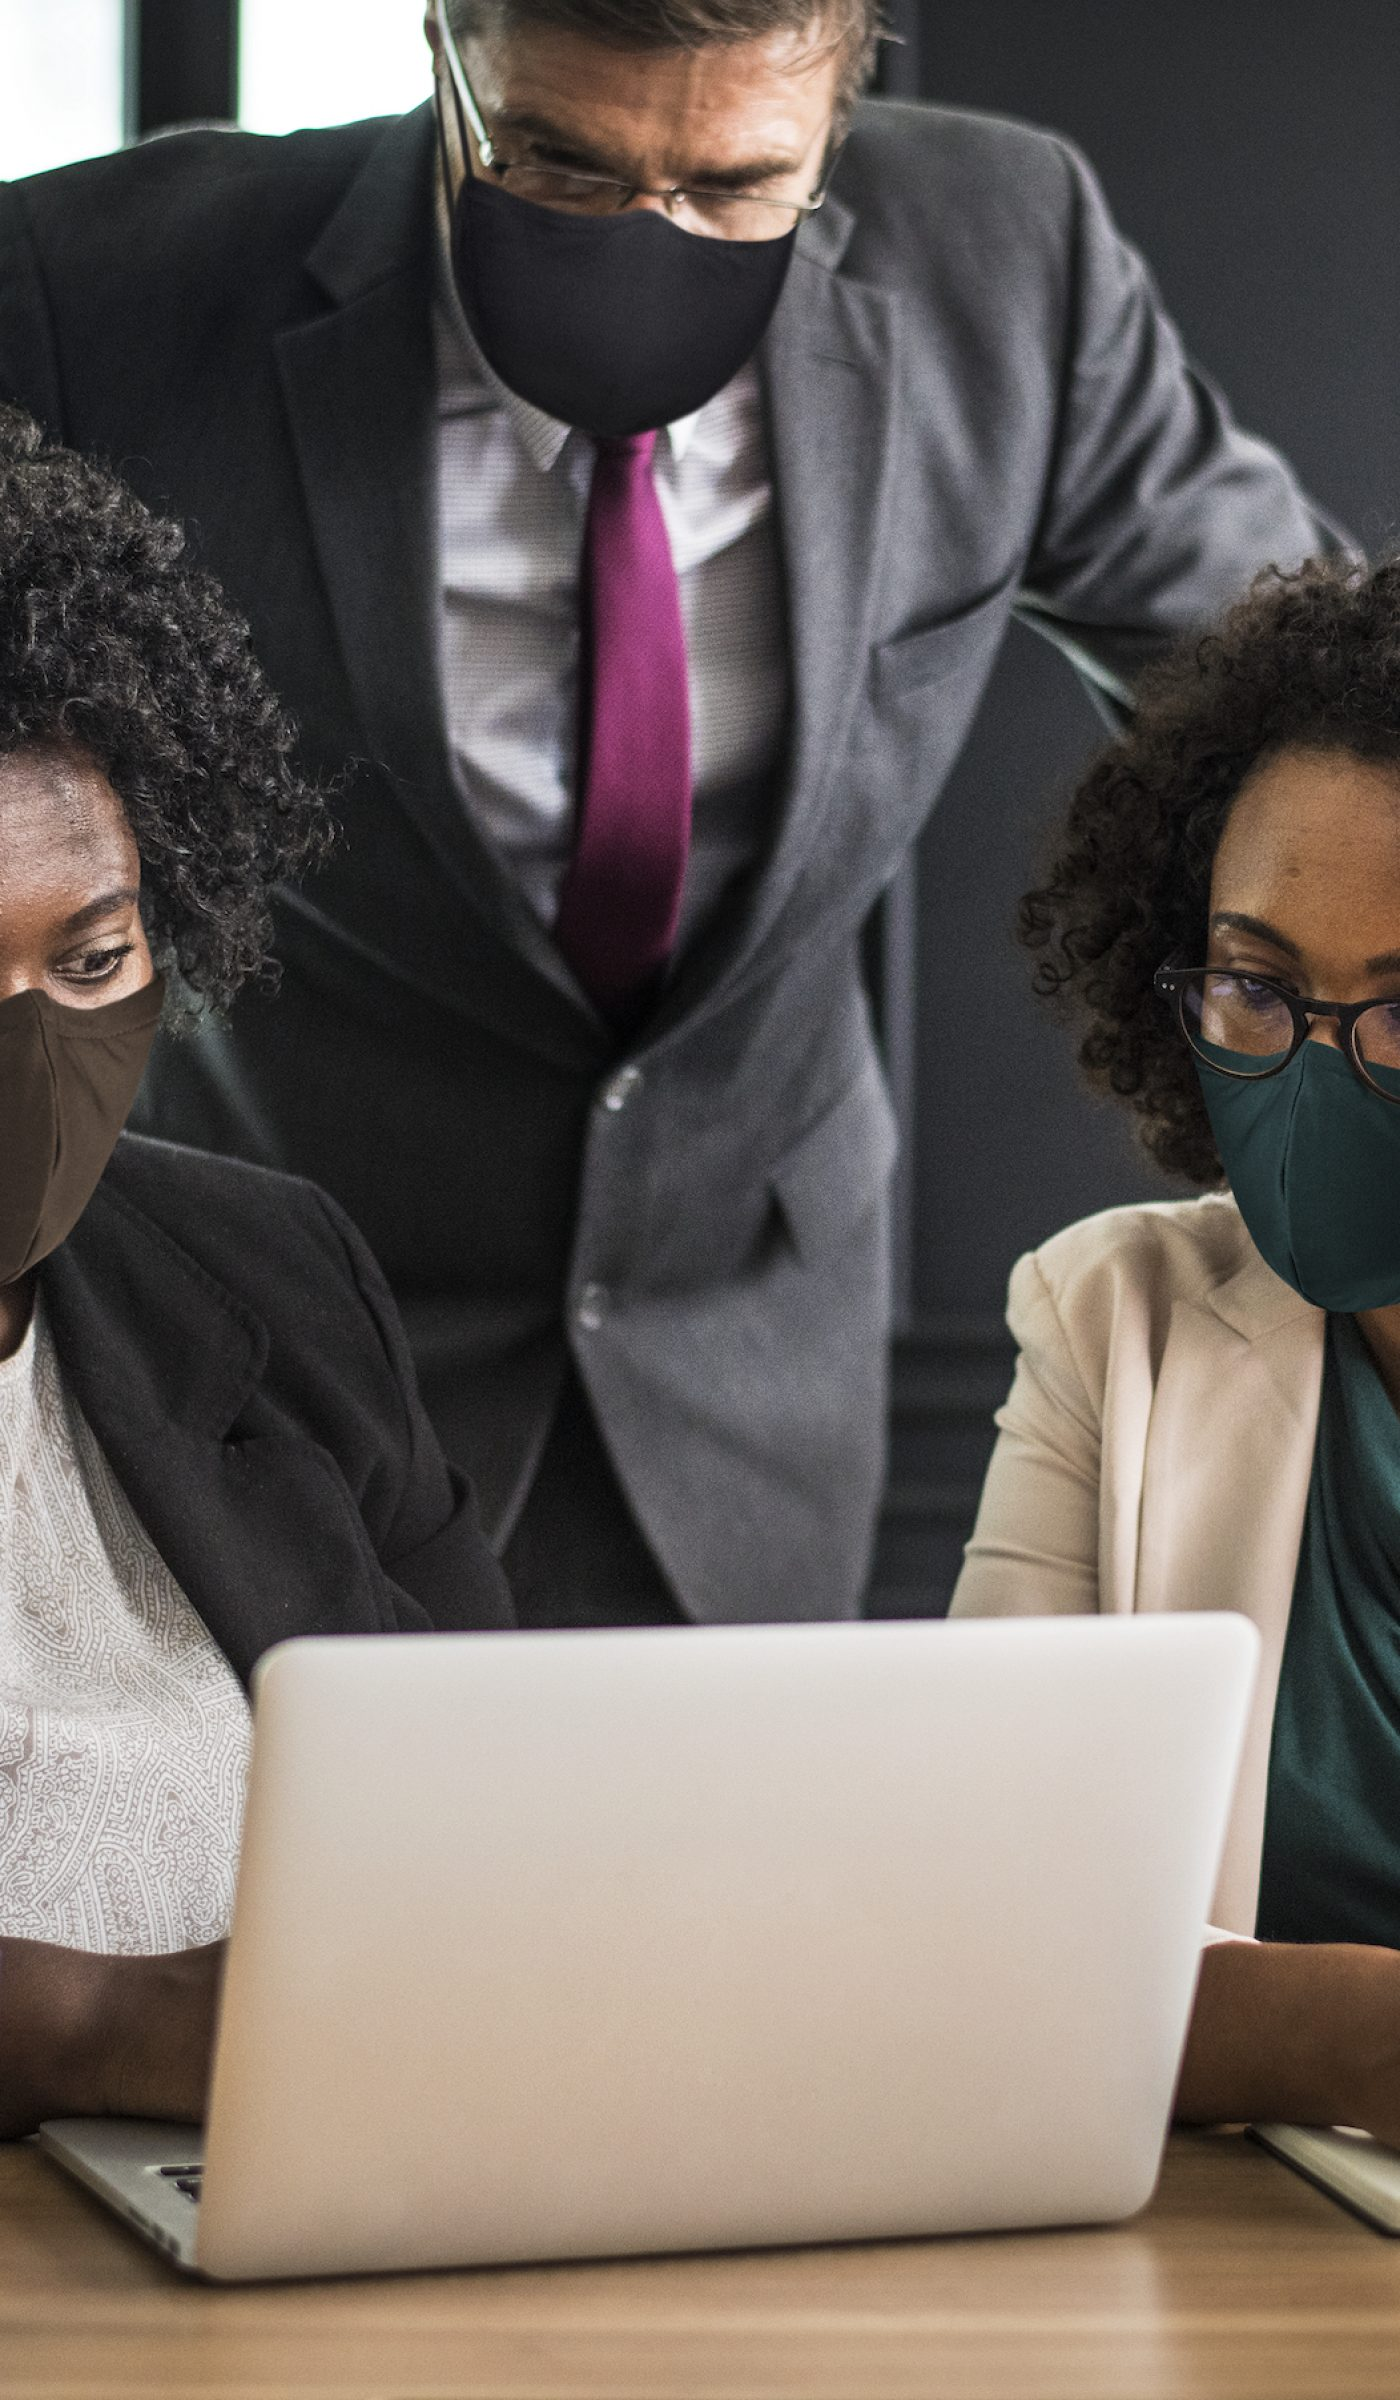 Business new normal, people wearing masks in the office